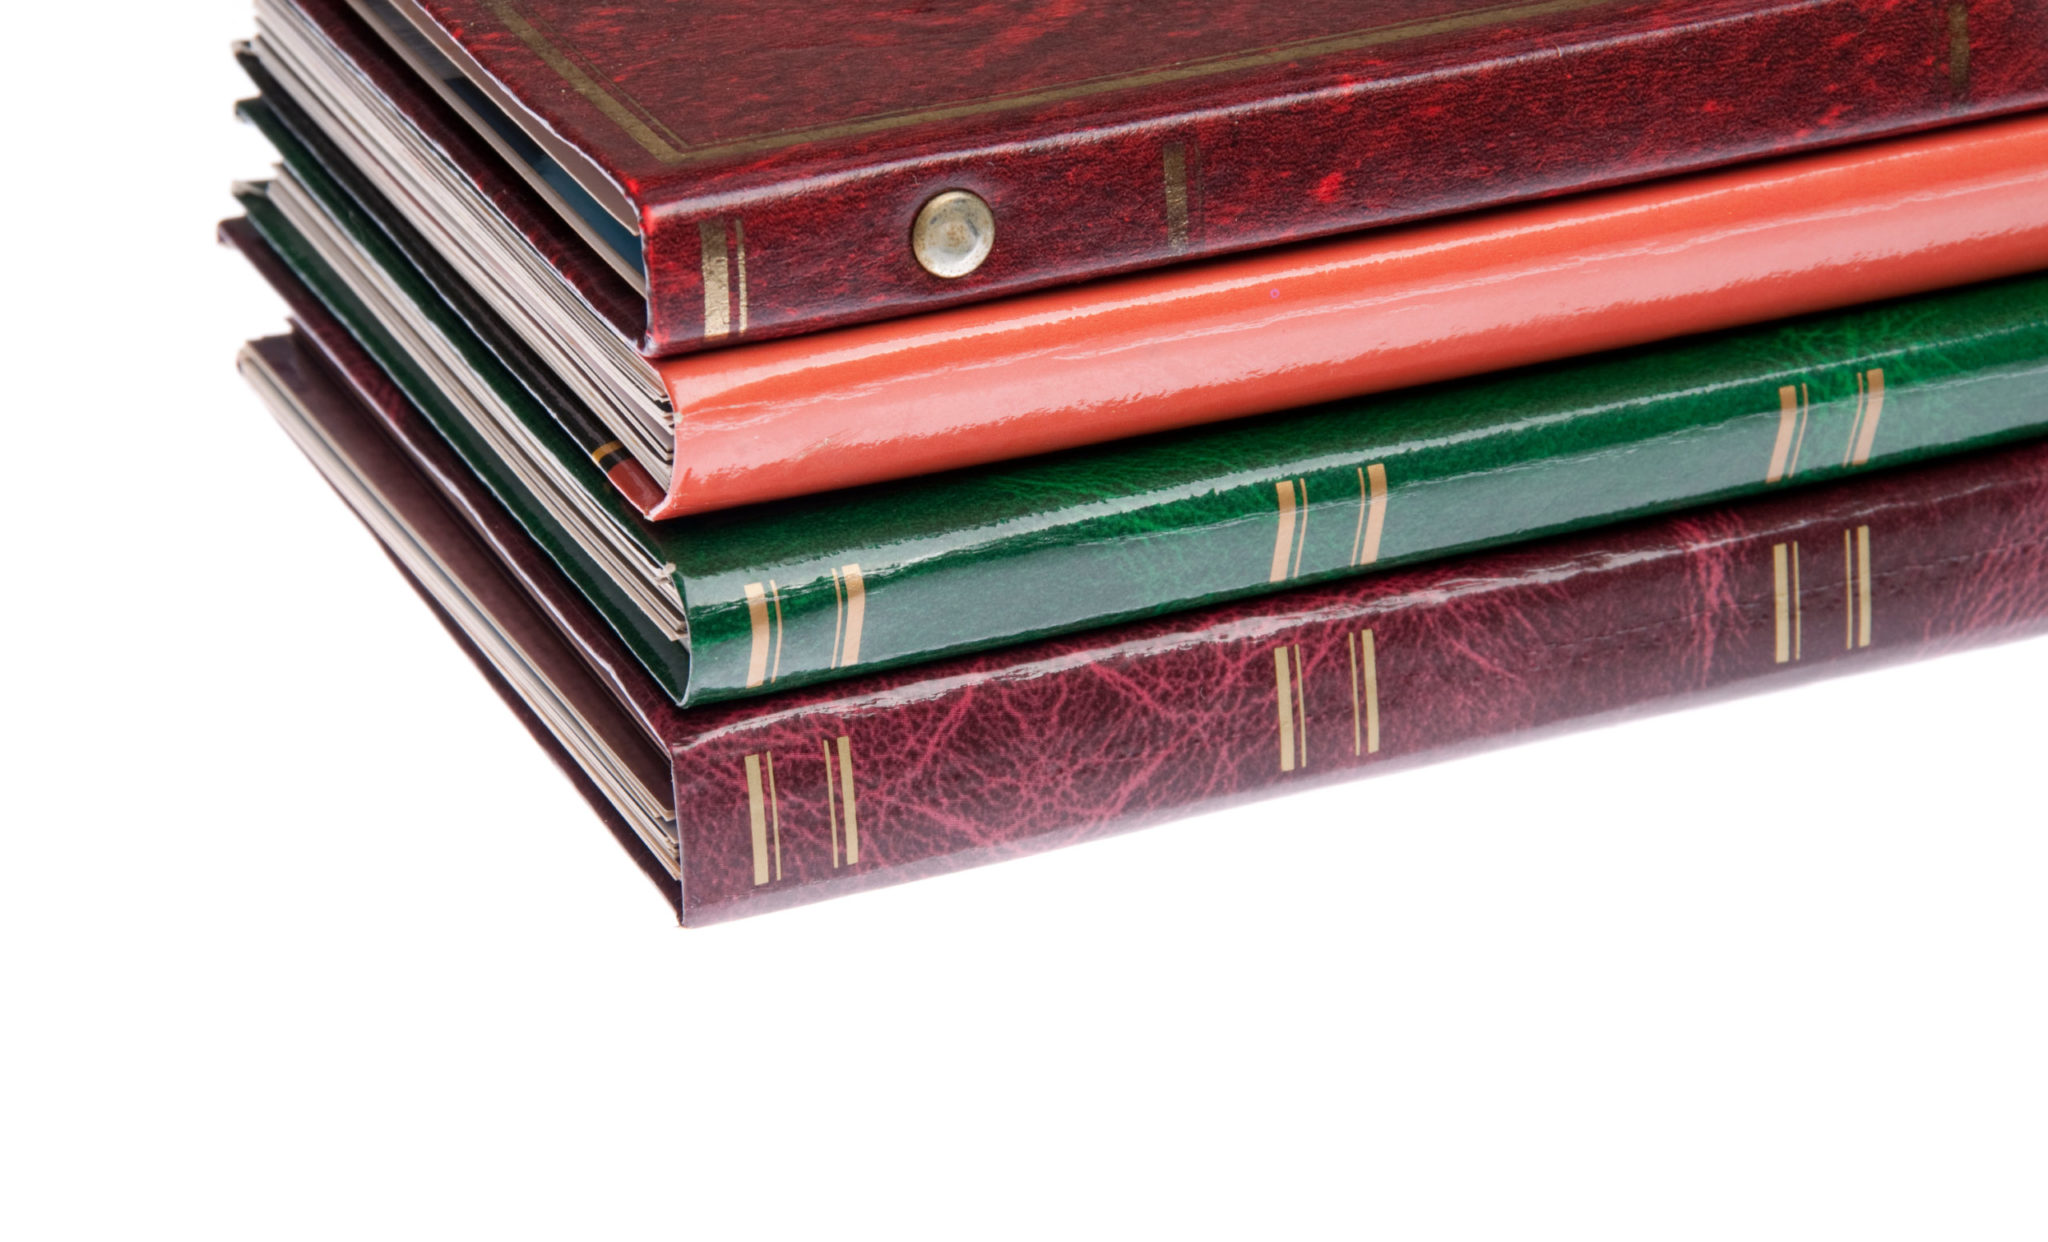 A stack of photo albums to illustrate Temperature-Controlled Storage How Cool Is That